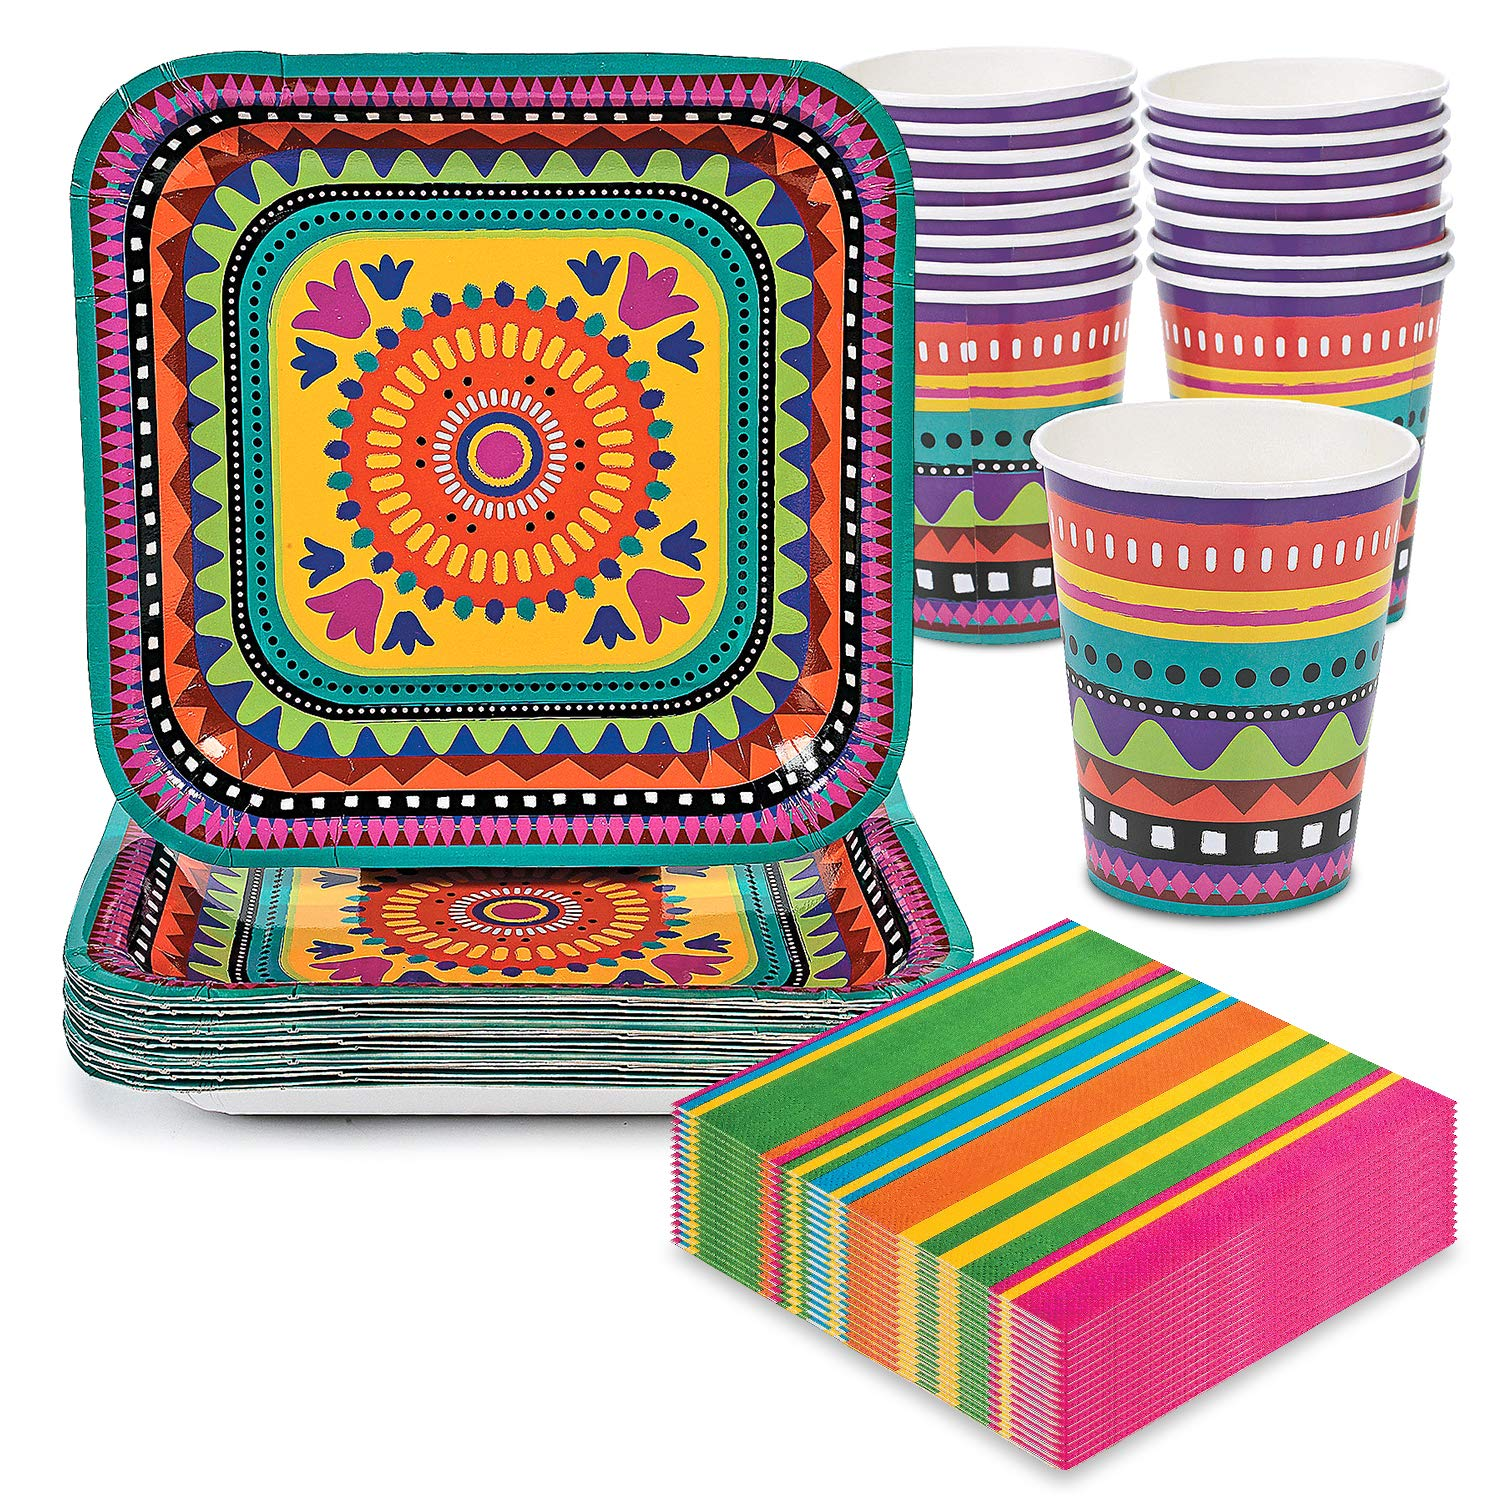 Fiesta Party Pack - Cups, Plates, Napkins - For Cinco De Mayo or Summer Parties - Serves 16 by Live It Up! Party Supplies